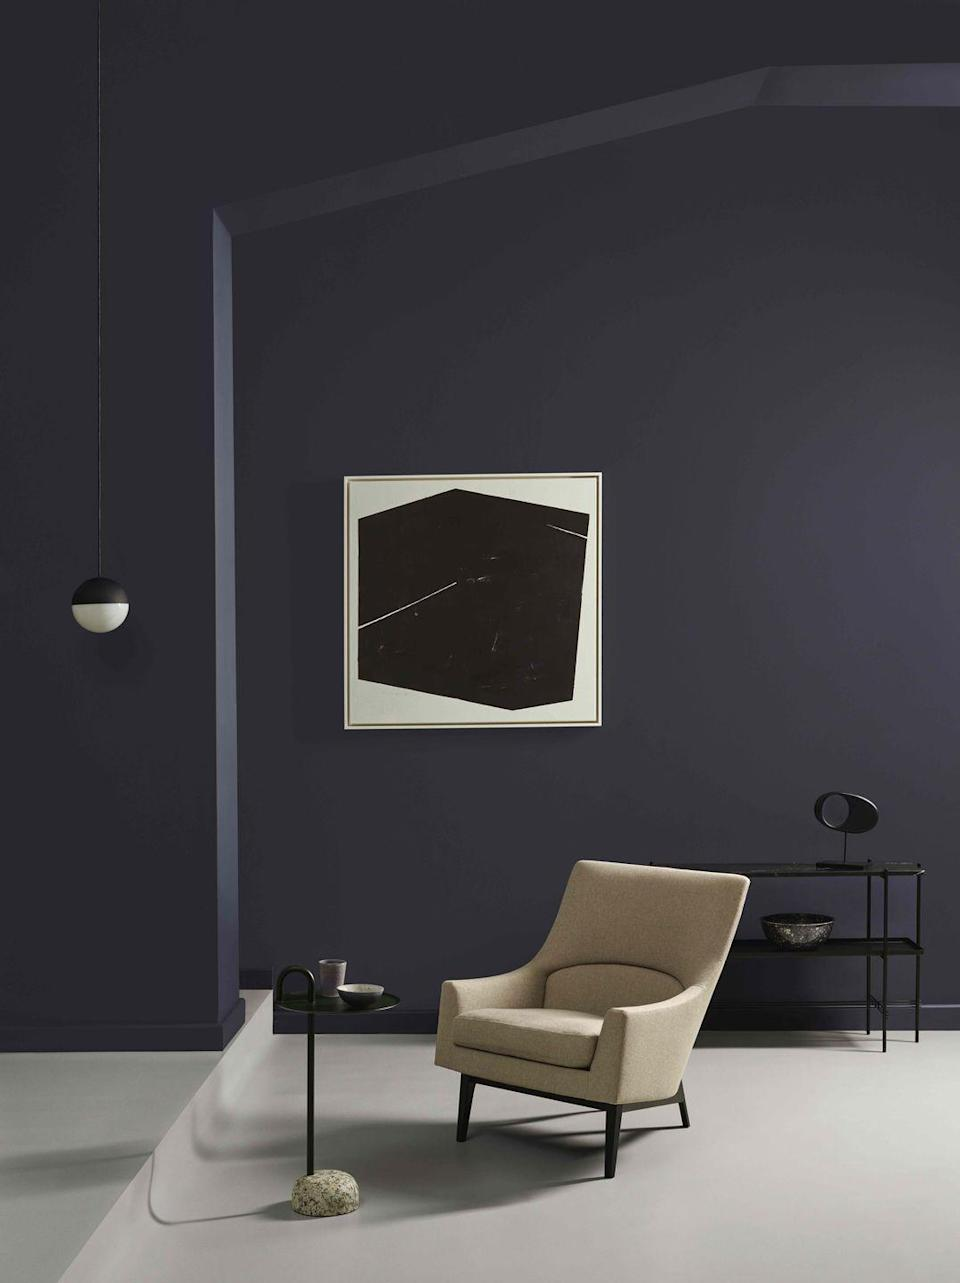 "<p>The dramatic shade of '<a href=""https://www.crownpaints.co.uk/products/elle-decoration-by-crown/obsidian---flat-matt/black-glass-no.-194/18061"" rel=""nofollow noopener"" target=""_blank"" data-ylk=""slk:Black Glass"" class=""link rapid-noclick-resp"">Black Glass</a>' paint makes a memorable design statement for guests that can set the tone for the rest of a home. For a truly lasting impression, also consider this same colour for your hallway and entrance.</p><p><strong>Like this article? </strong><u><a href=""https://hearst.emsecure.net/optiext/optiextension.dll?ID=LKHLy4U%2BAPDM5JcrmOKxtYntAlN0FMNelBSKJmXANeFj7b3wVEXa8UQNxN3Kk5RyF_0Q89Kyk6%2BjLh"" rel=""nofollow noopener"" target=""_blank"" data-ylk=""slk:Sign up to our newsletter"" class=""link rapid-noclick-resp"">Sign up to our newsletter</a></u> to get more articles like this delivered straight to your inbox.</p><p><a class=""link rapid-noclick-resp"" href=""https://hearst.emsecure.net/optiext/optiextension.dll?ID=LKHLy4U%2BAPDM5JcrmOKxtYntAlN0FMNelBSKJmXANeFj7b3wVEXa8UQNxN3Kk5RyF_0Q89Kyk6%2BjLh"" rel=""nofollow noopener"" target=""_blank"" data-ylk=""slk:SIGN UP""><strong><strong><strong>SIGN UP</strong></strong></strong></a></p><p><strong>Keep your spirits up </strong>and <a href=""https://www.hearstmagazines.co.uk/elle-decoration-magazine-subscription-website?utm_source=elledecoration.co.uk&utm_medium=referral&utm_content=stayathome"" rel=""nofollow noopener"" target=""_blank"" data-ylk=""slk:subscribe to ELLE Decoration here"" class=""link rapid-noclick-resp"">subscribe to ELLE Decoration here</a>, so our magazine is delivered direct to your door.</p>"